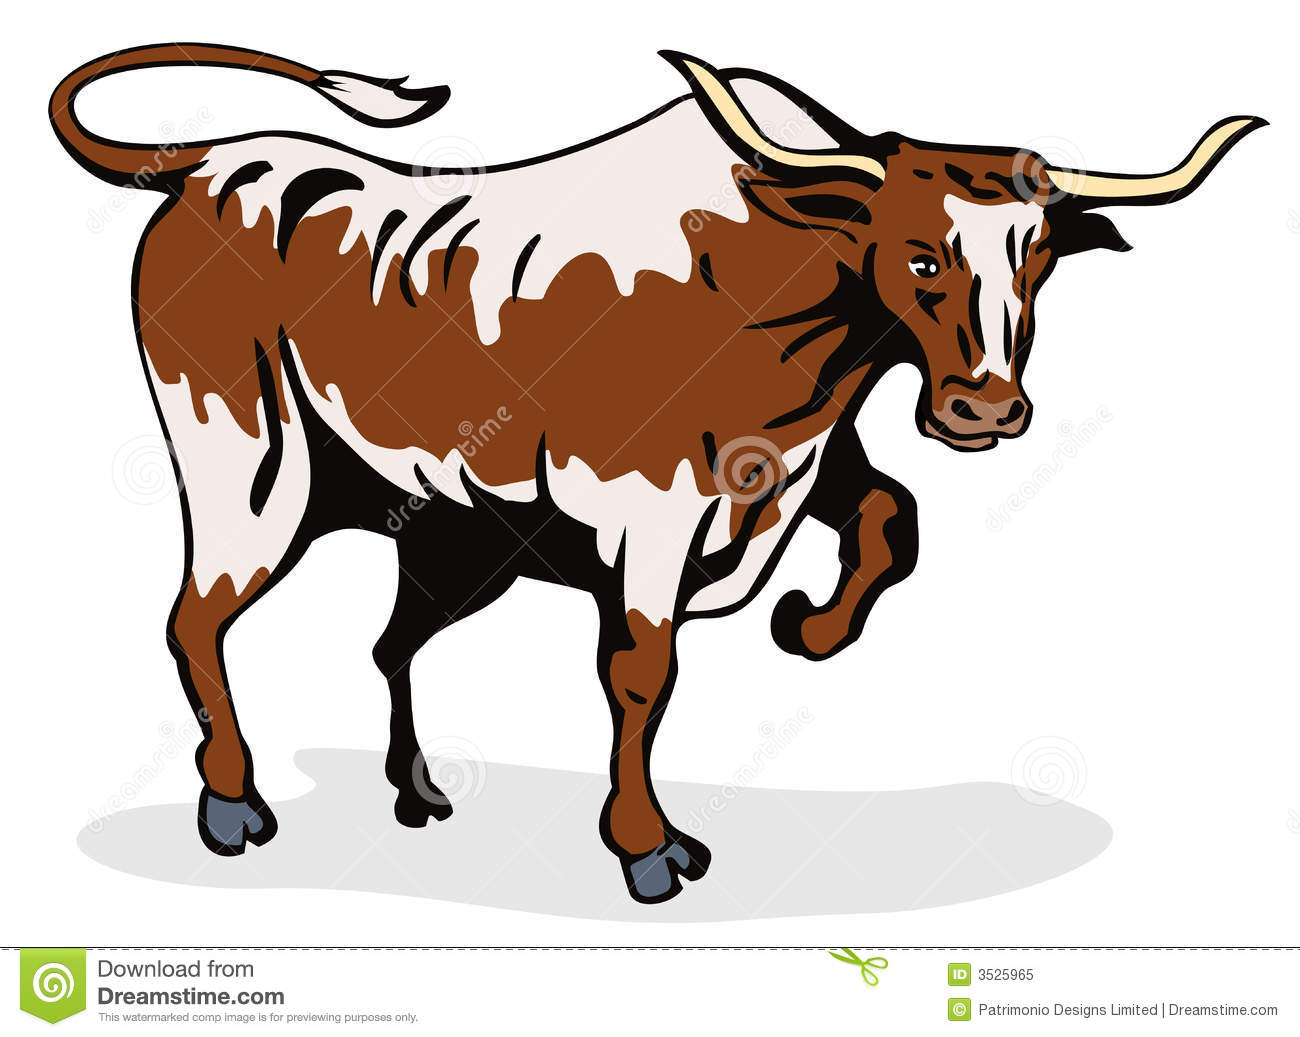 Clip Art How To Draw A Cow Skull - Drawings Of Longhorn Skulls , Free  Transparent Clipart - ClipartKey